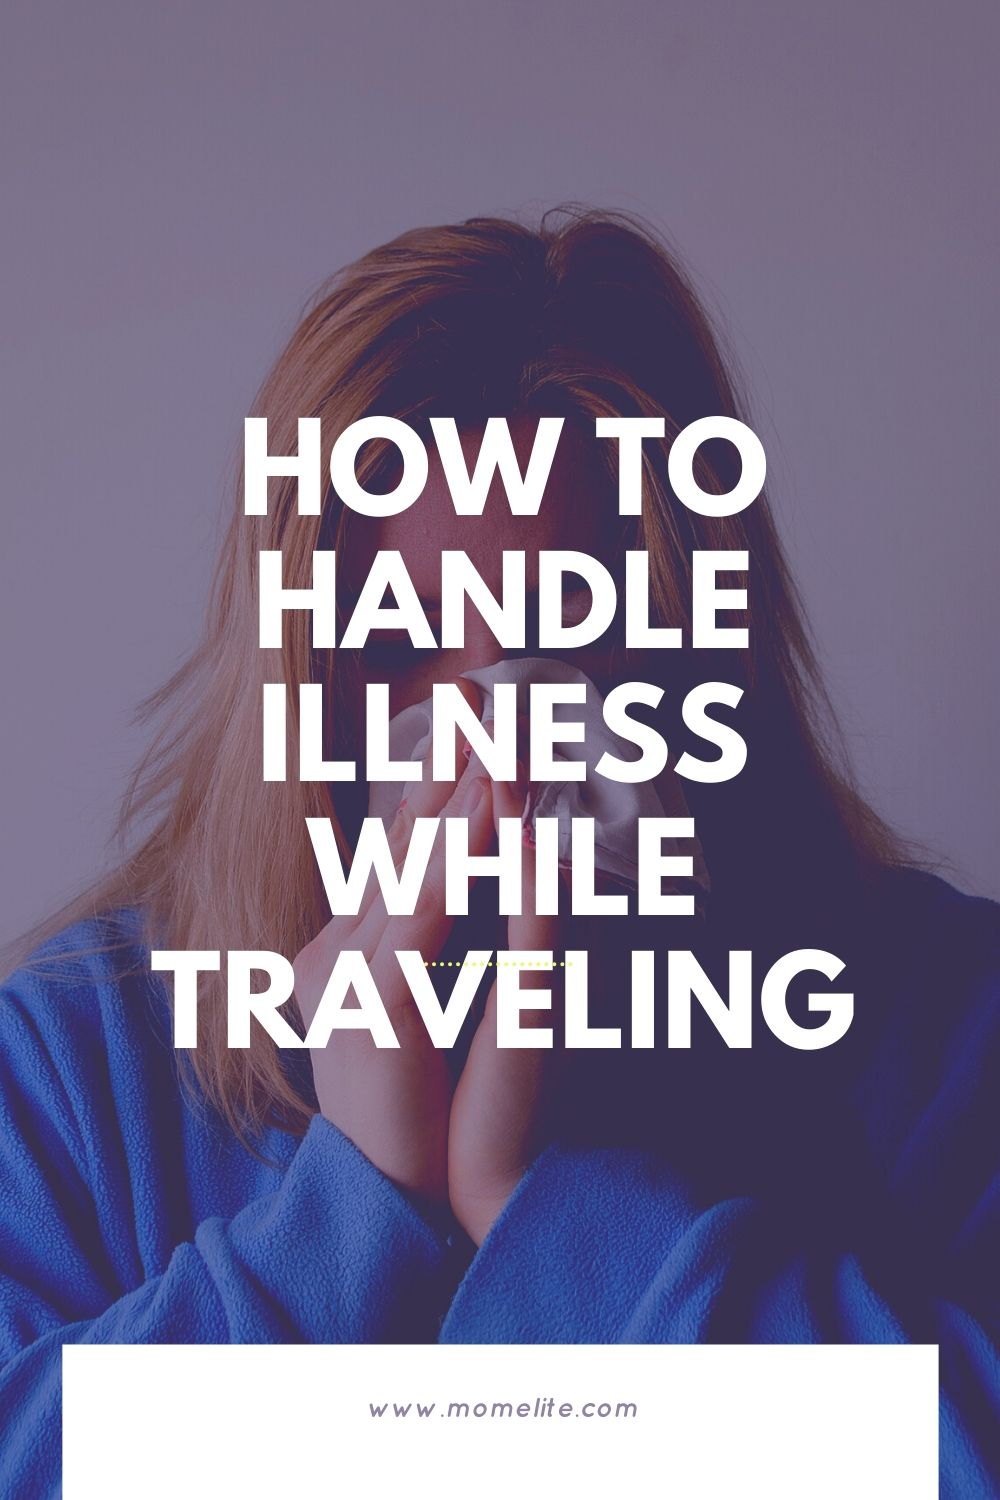 how to handle illness while traveling